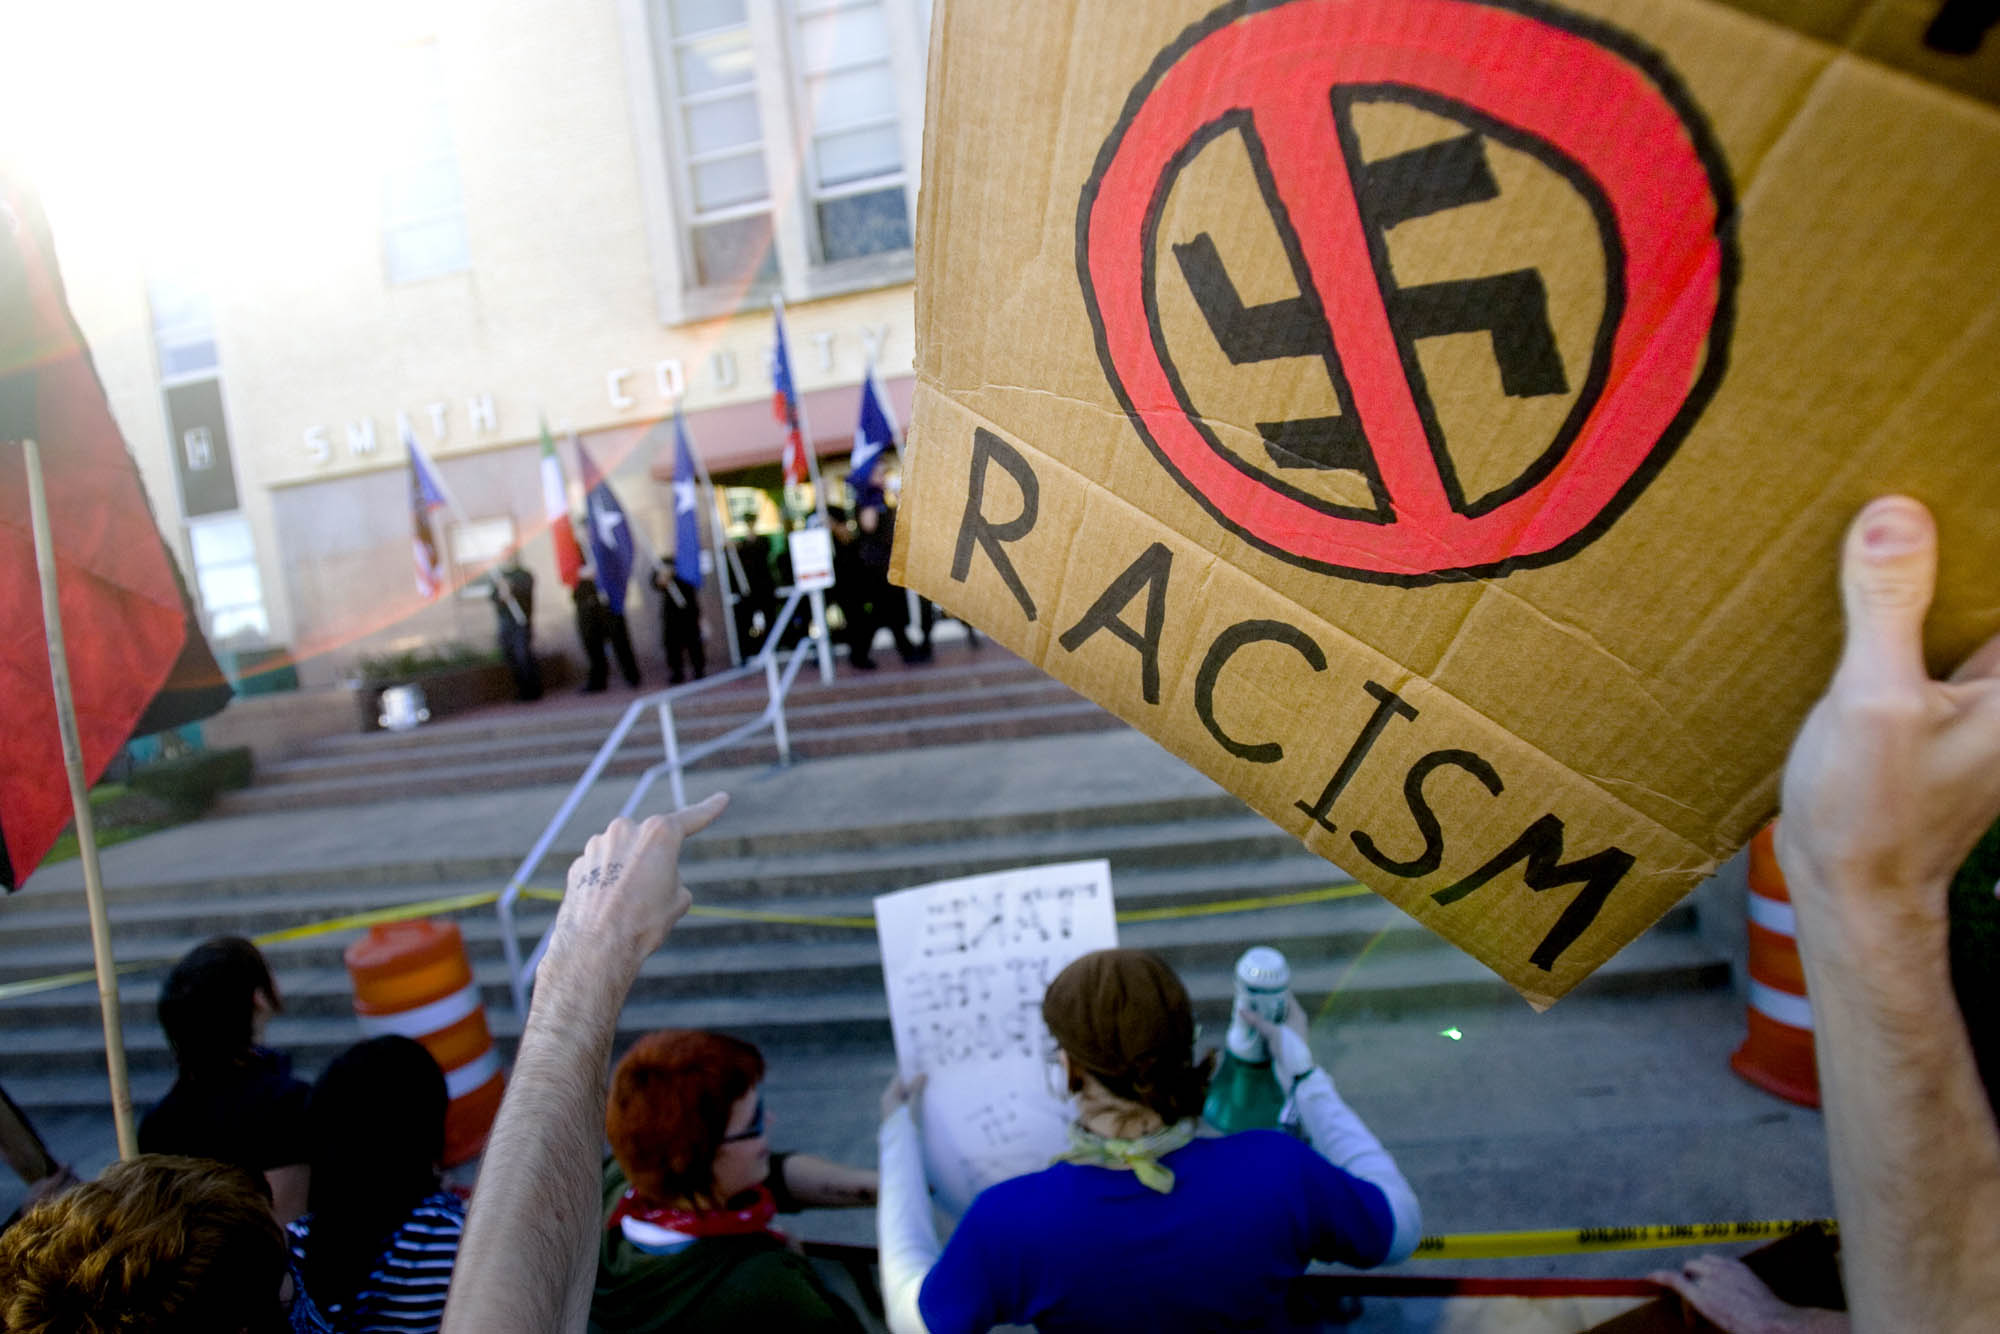 Anti-Racist Action Protests neo-Nazis in Texas